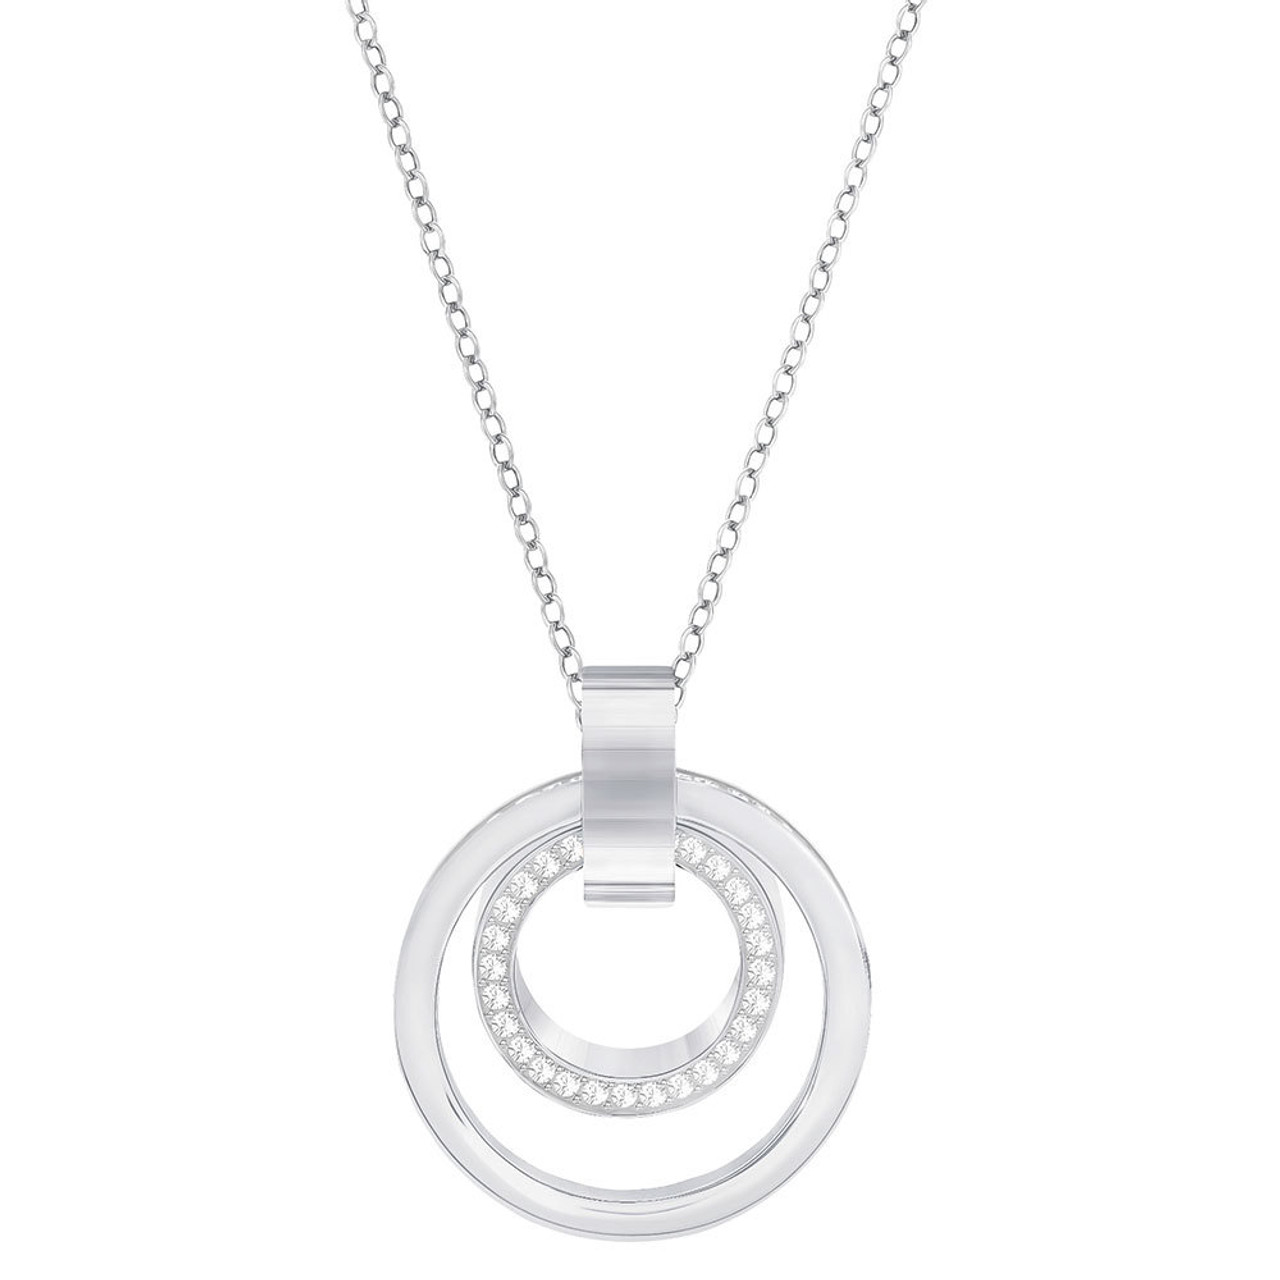 2b05fd523 swarovski-hollow-circle-medium-pendant -in-rhodium-5349345__09738.1508185488.jpg?c=2&imbypass=on